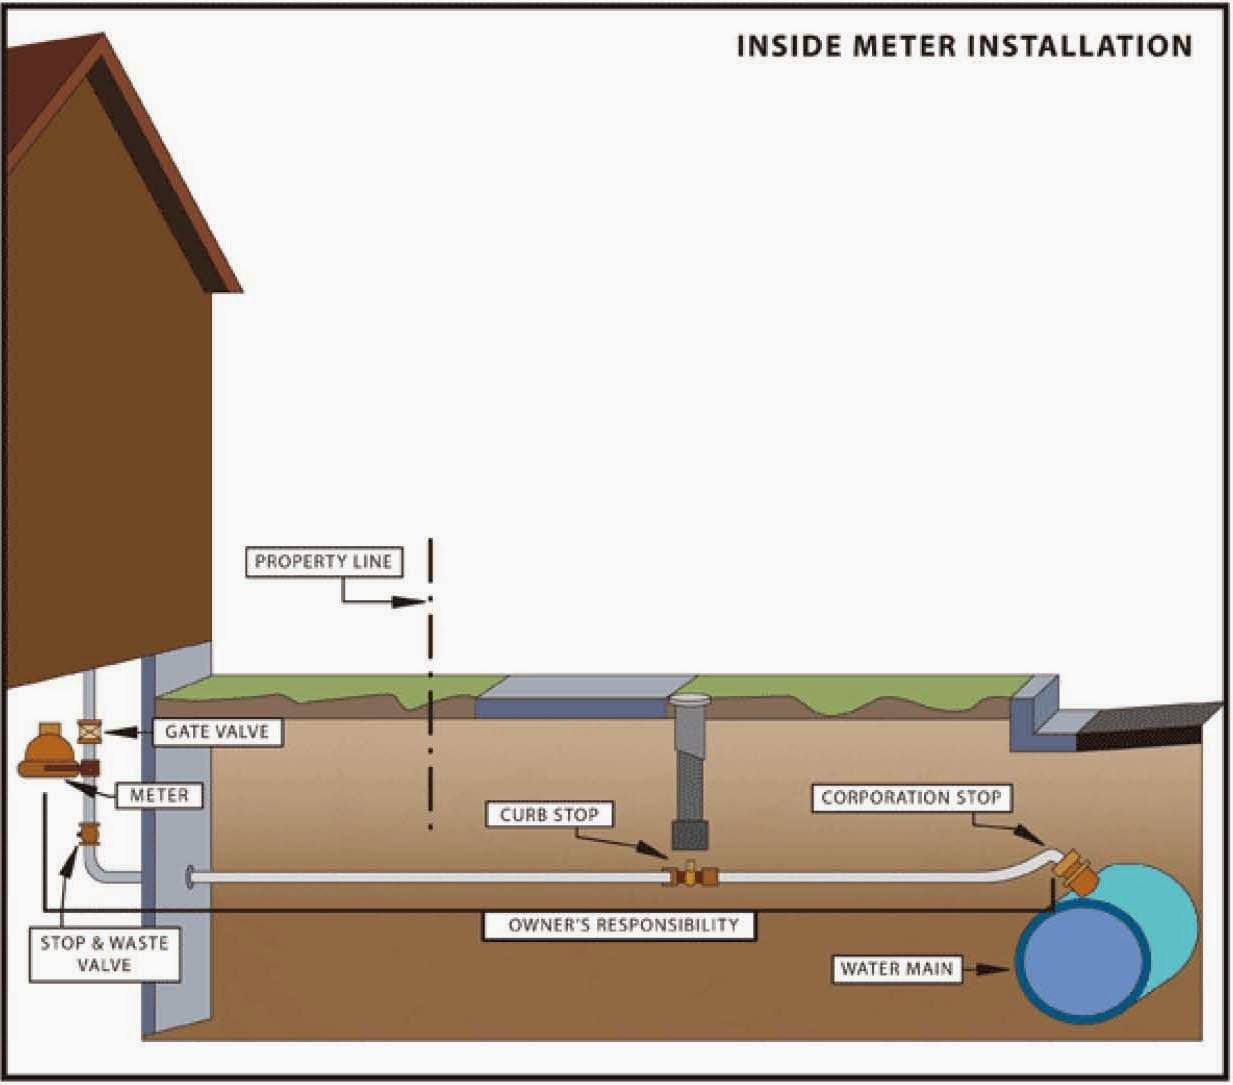 NIXCAVATING, INC.: You\'ve got a Leak in Your Water Line - Now What?